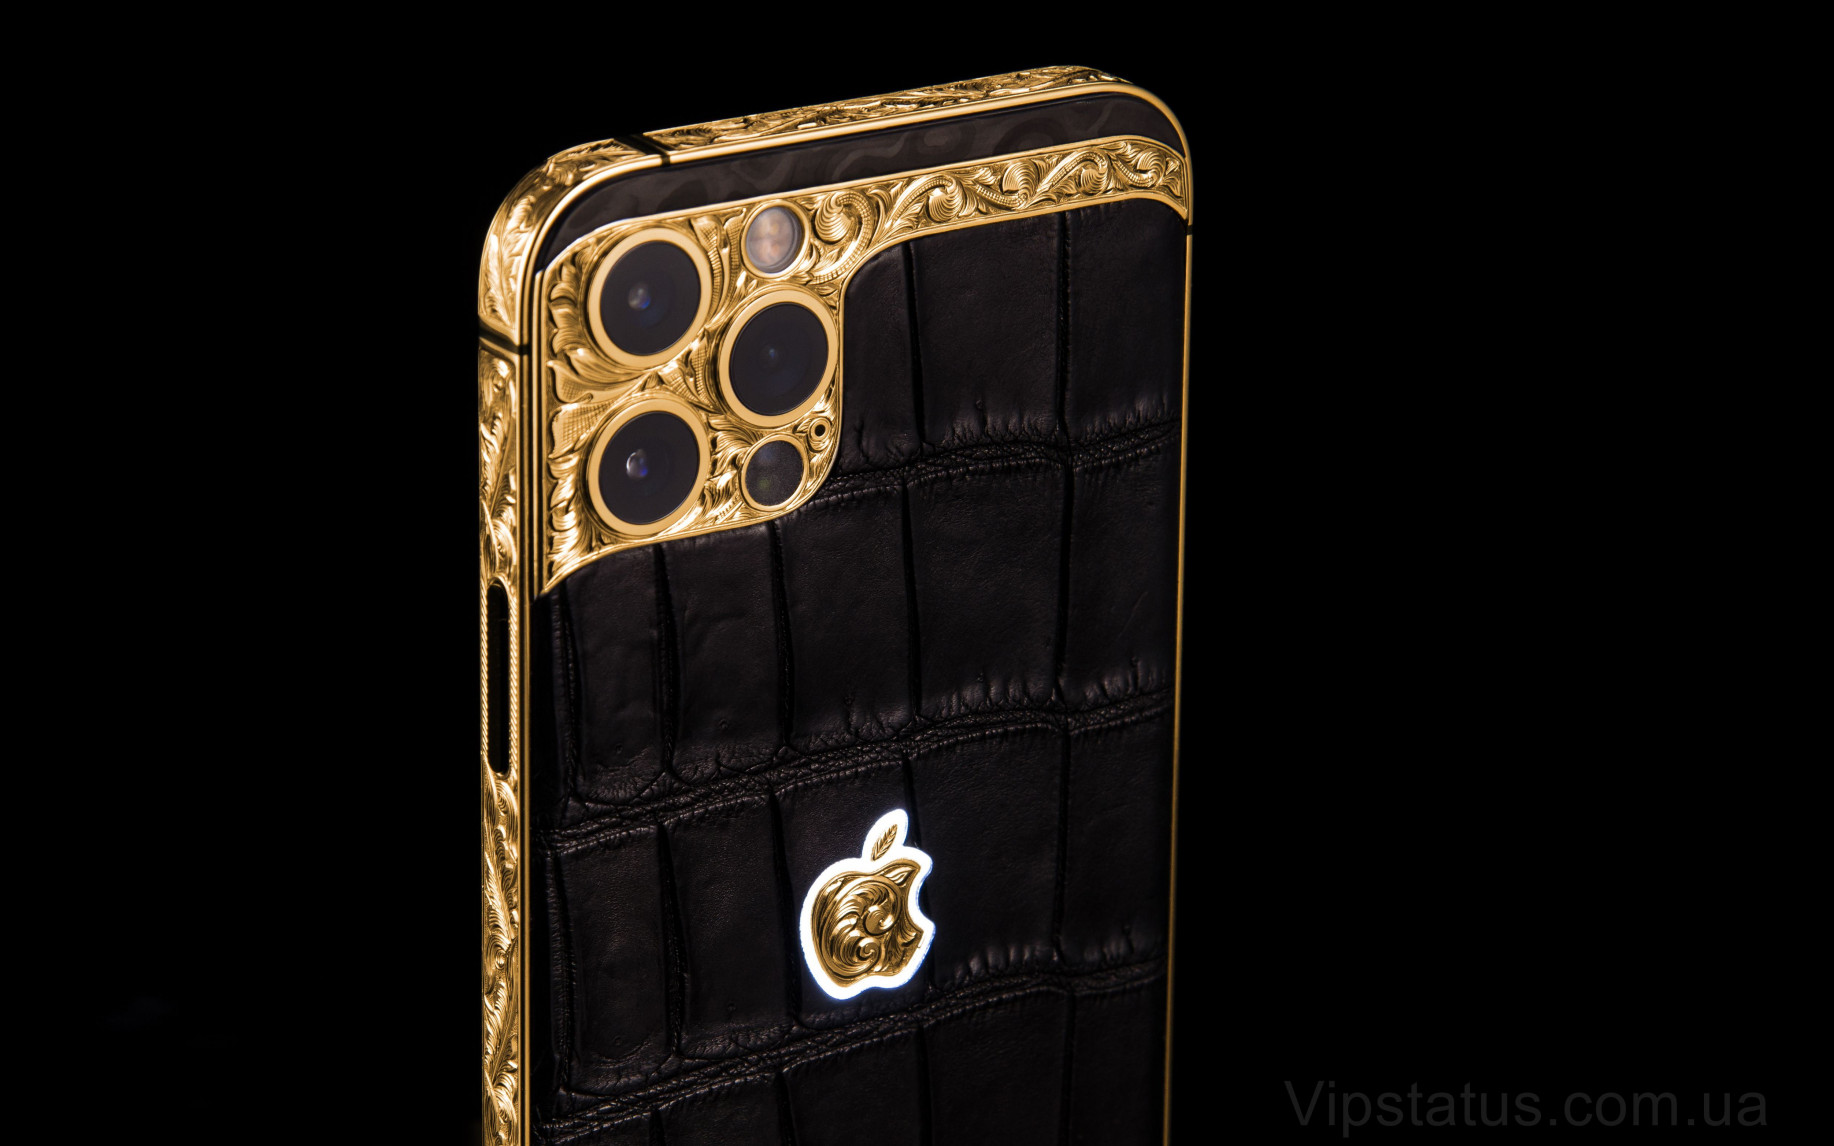 Elite Gold Lord IPHONE 12 PRO MAX 512 GB Gold Lord IPHONE 12 PRO MAX 512 GB image 2